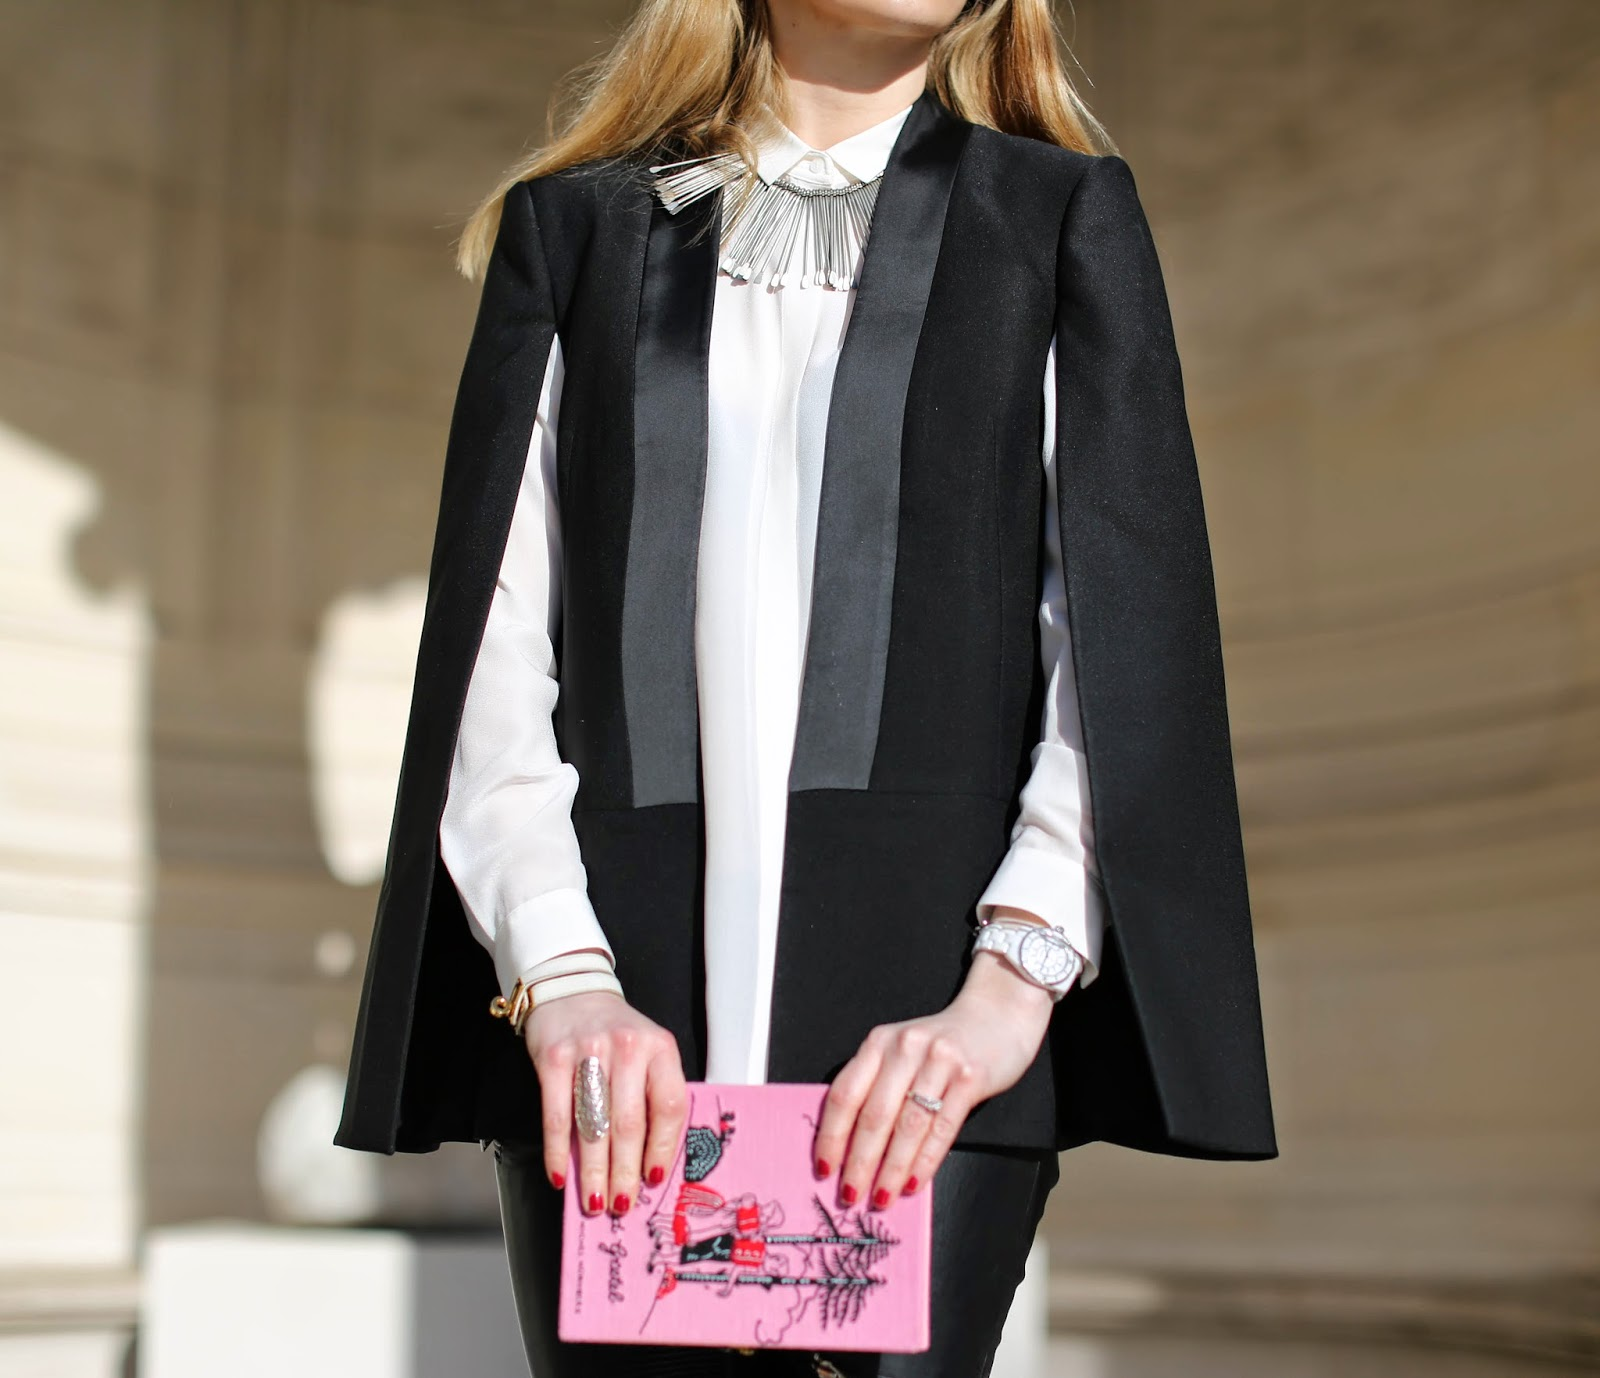 fashion week, zara, pearl and rubies, charlotte olympia, the outnet, streetstyle, fashion blogger